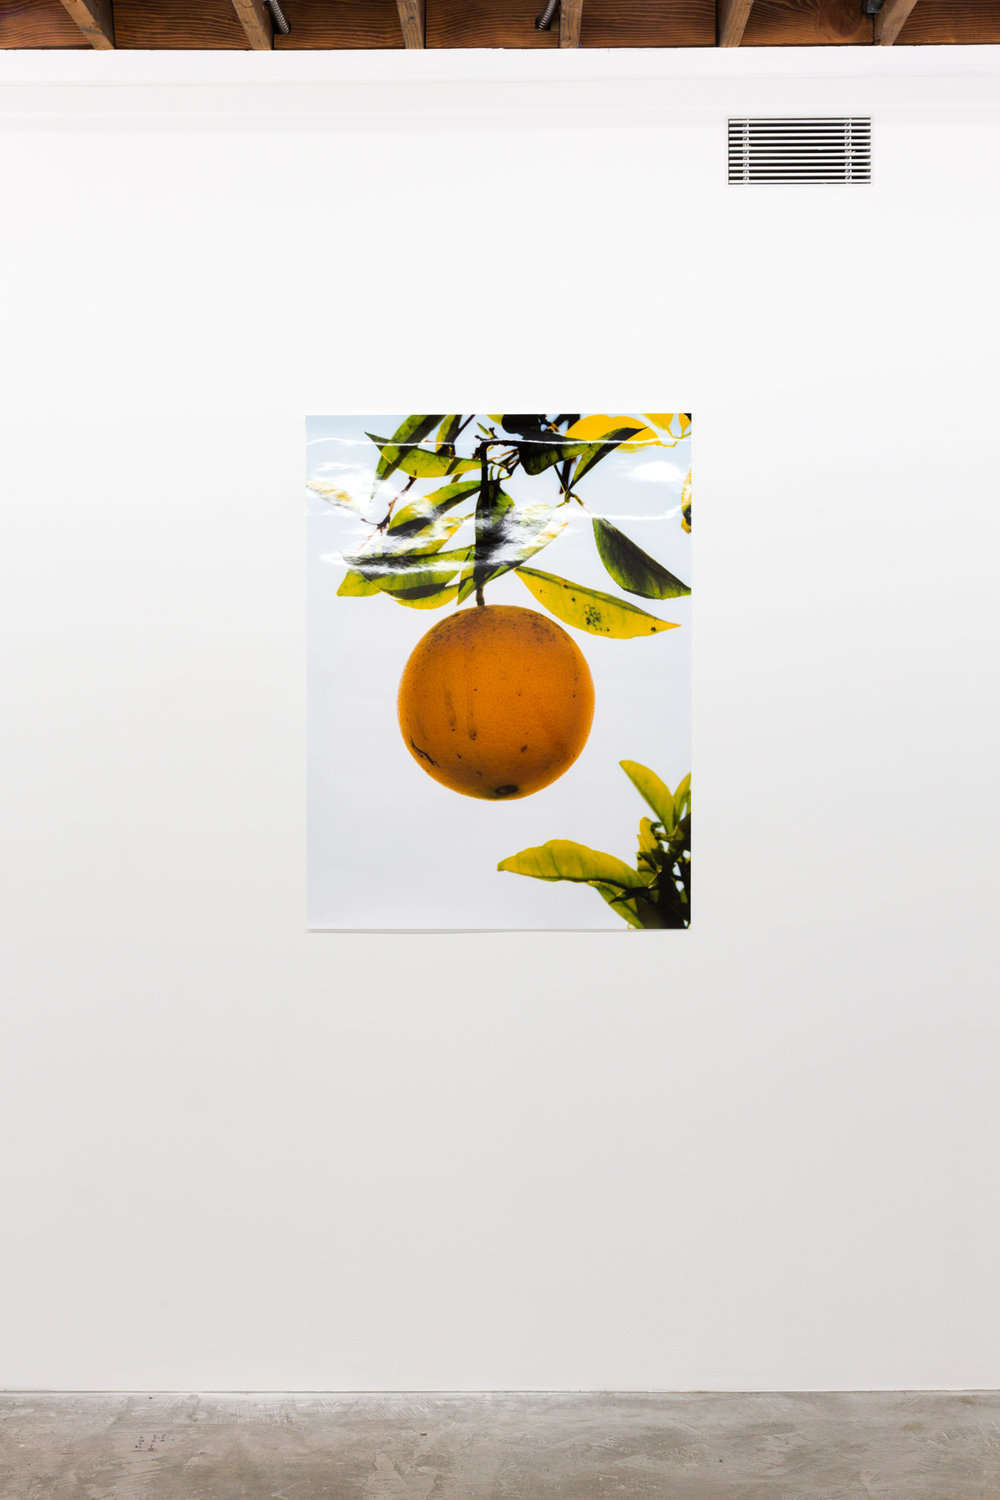 Orange II, December 31, 2017, Huntington Beach, CA , 2018, Chromira print, 40 x 30 inches